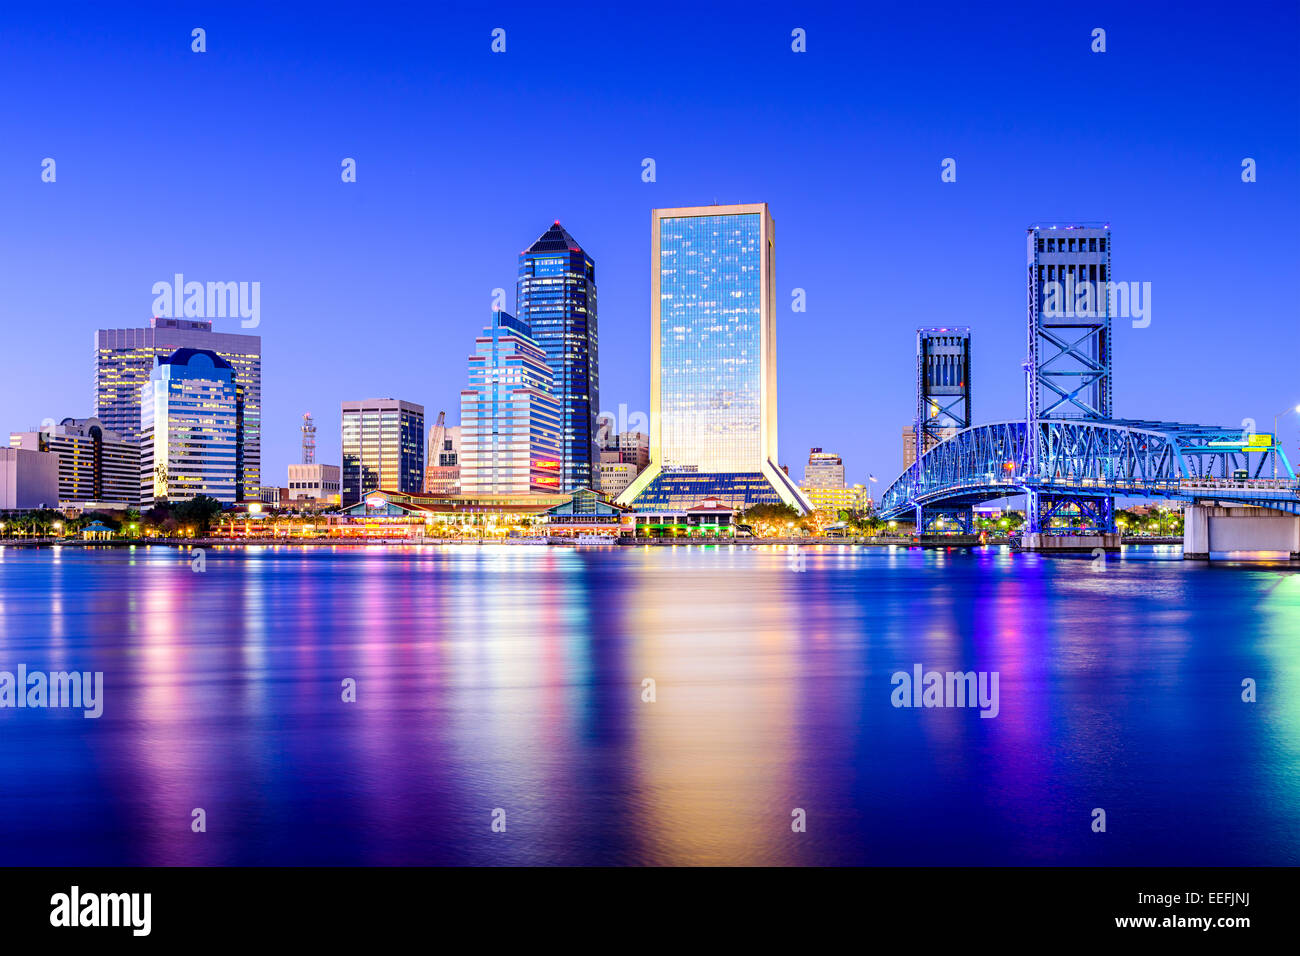 Jacksonville, Florida, USA downtown city skyline on St. Johns River. - Stock Image